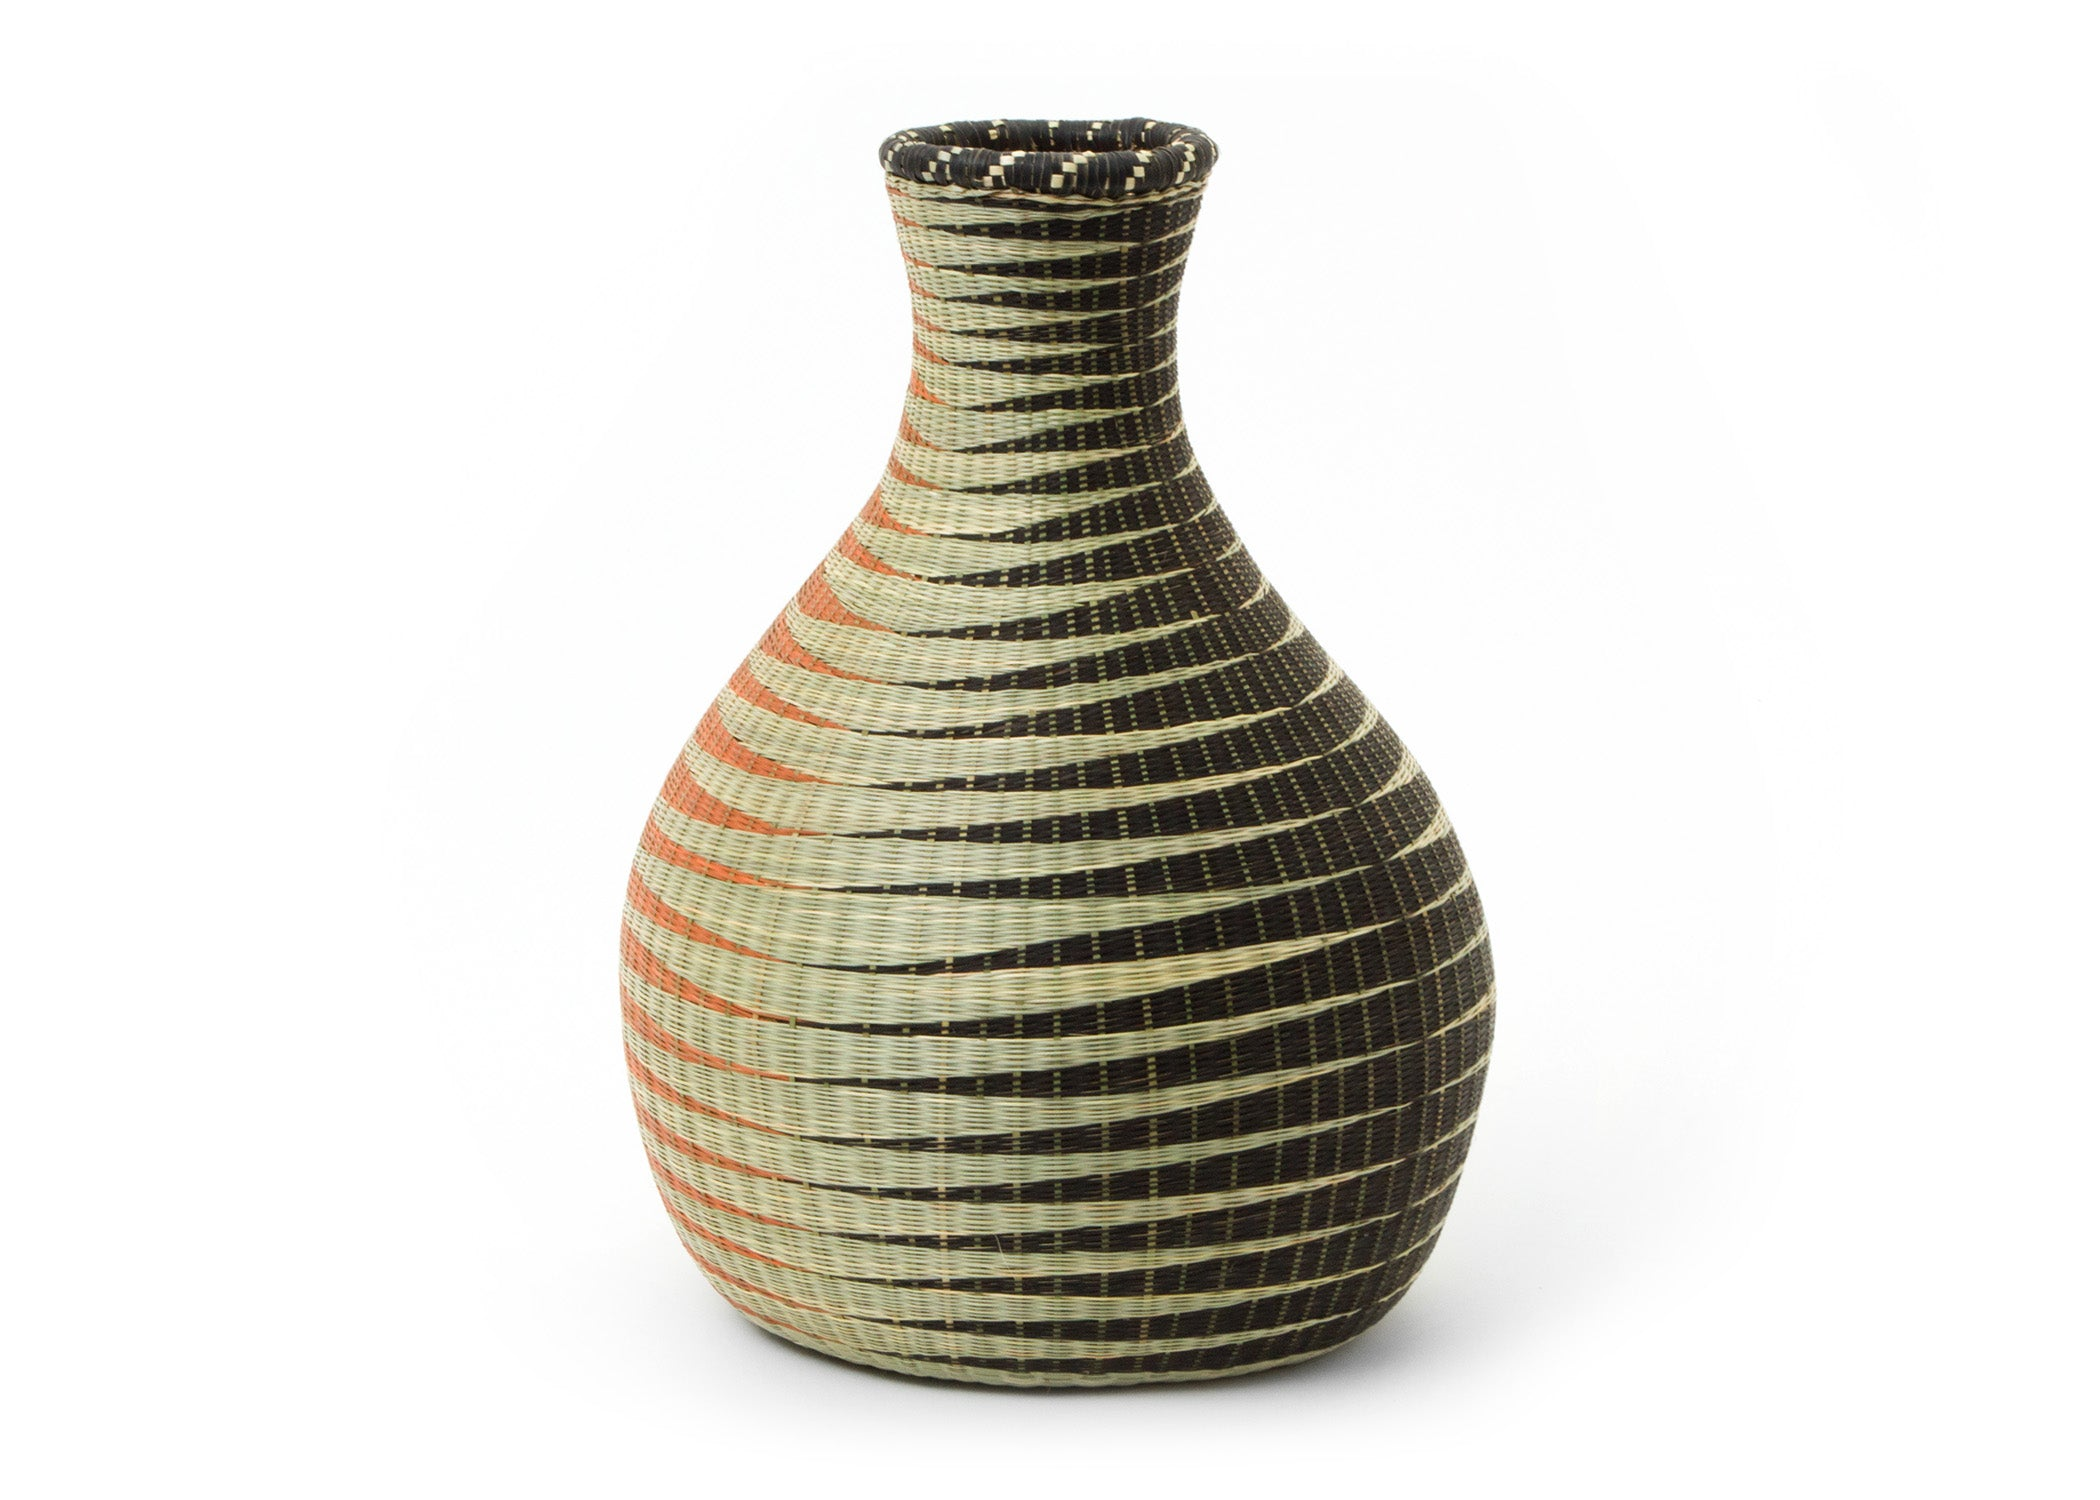 Huye Bud Floor Vase III - KAZI - Artisan made high quality home decor and wall art